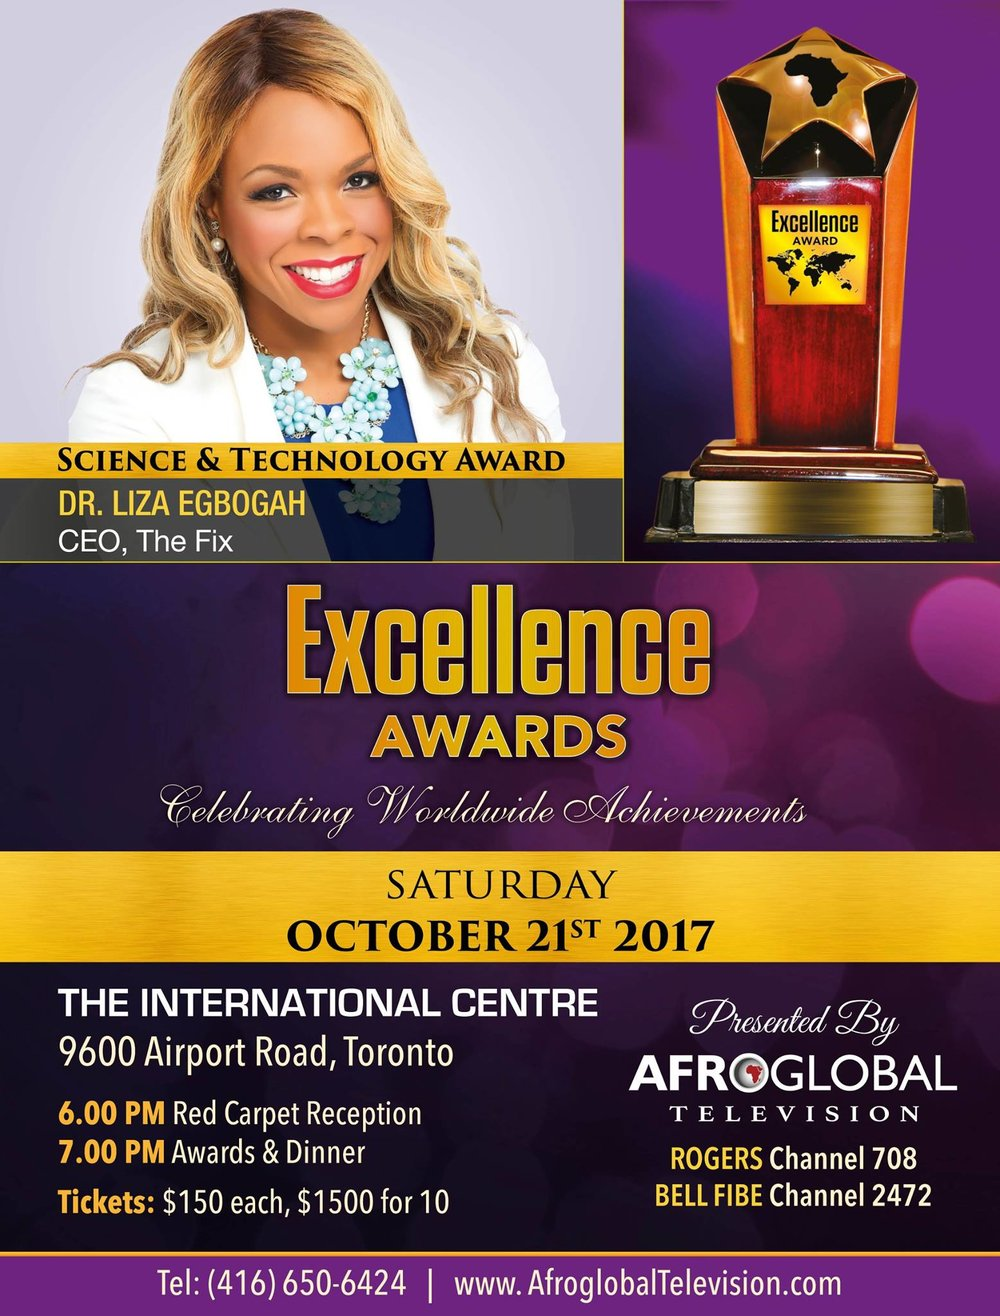 Dr. Liza Egbogah Excellence Awards